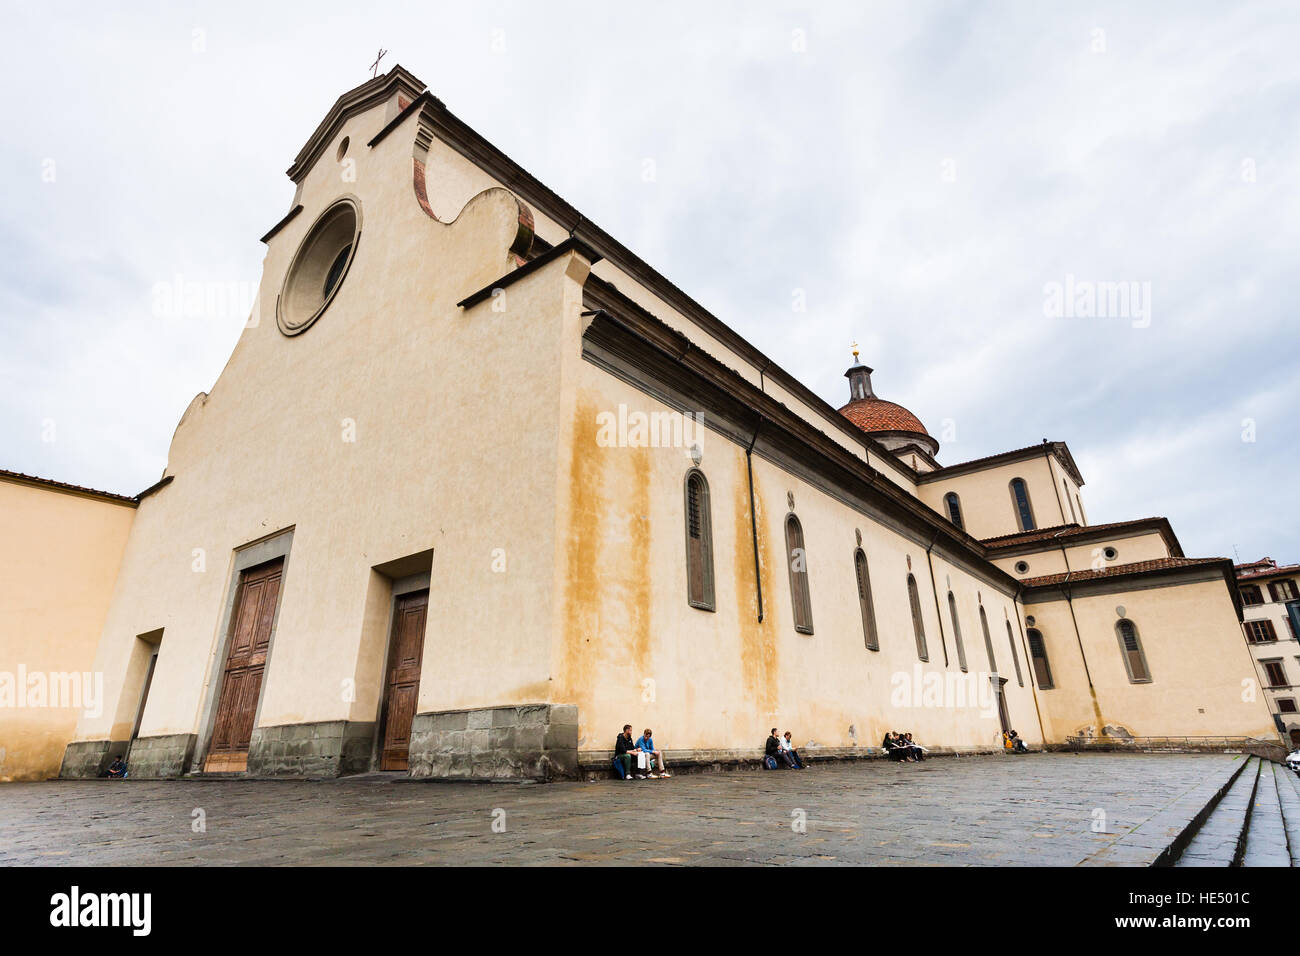 FLORENCE, ITALY - NOVEMBER 5, 2016: People near Basilica di Santo Spirito (Basilica of the Holy Spirit) in Florence - Stock Image